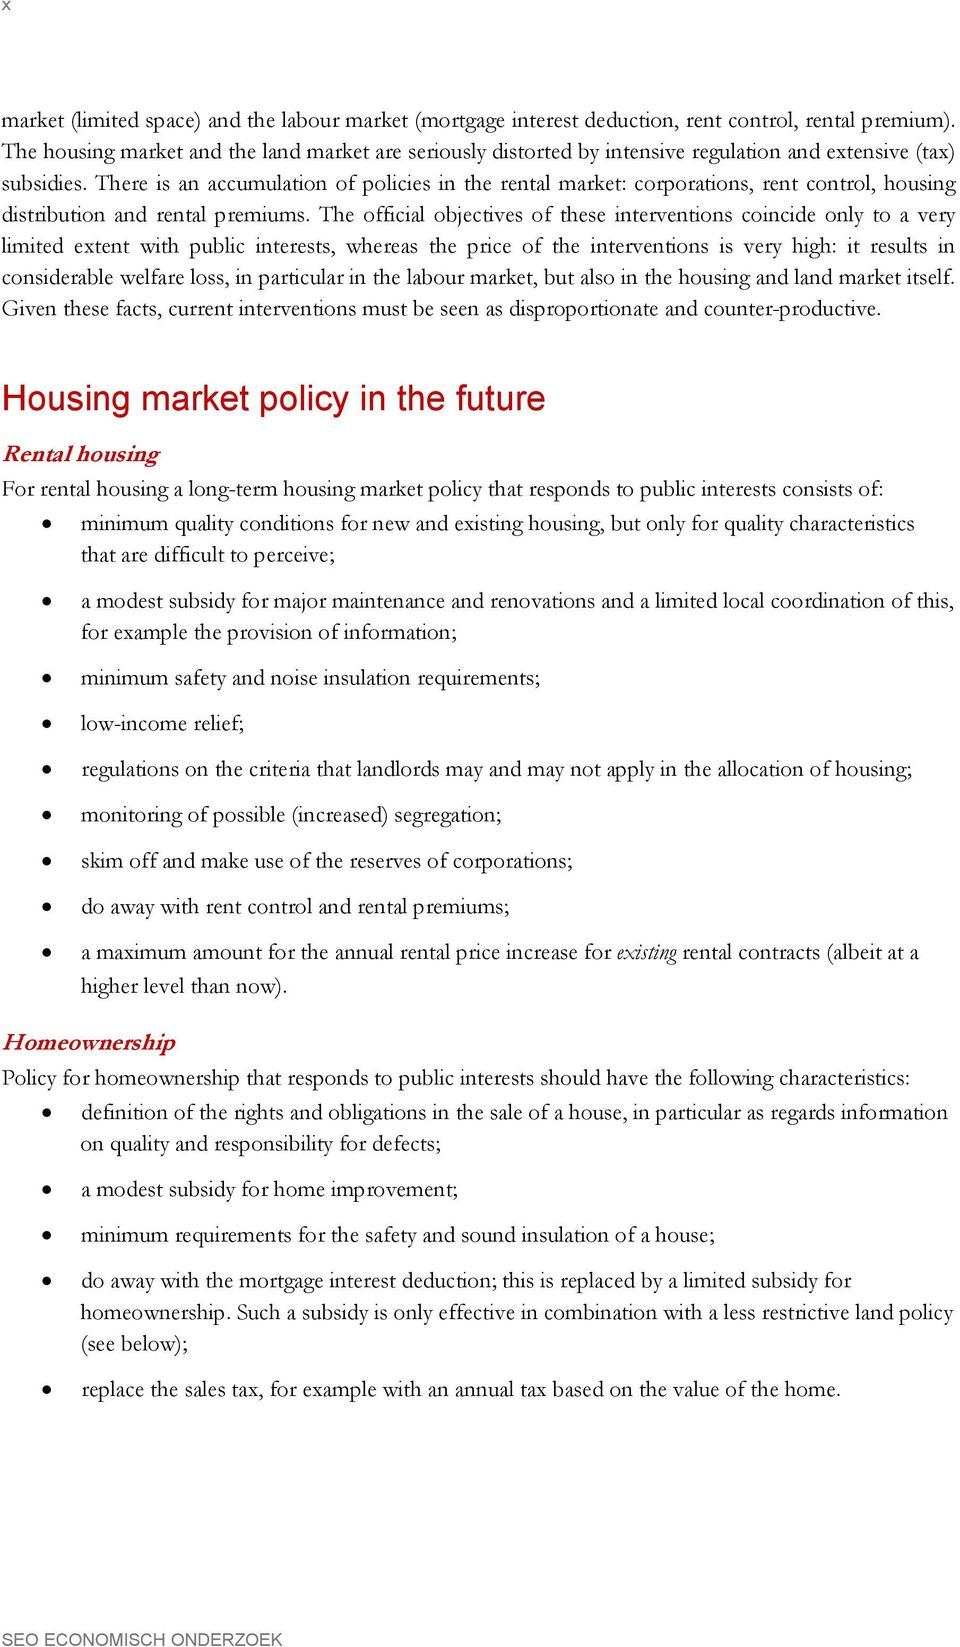 There is an accumulation of policies in the rental market: corporations, rent control, housing distribution and rental premiums.